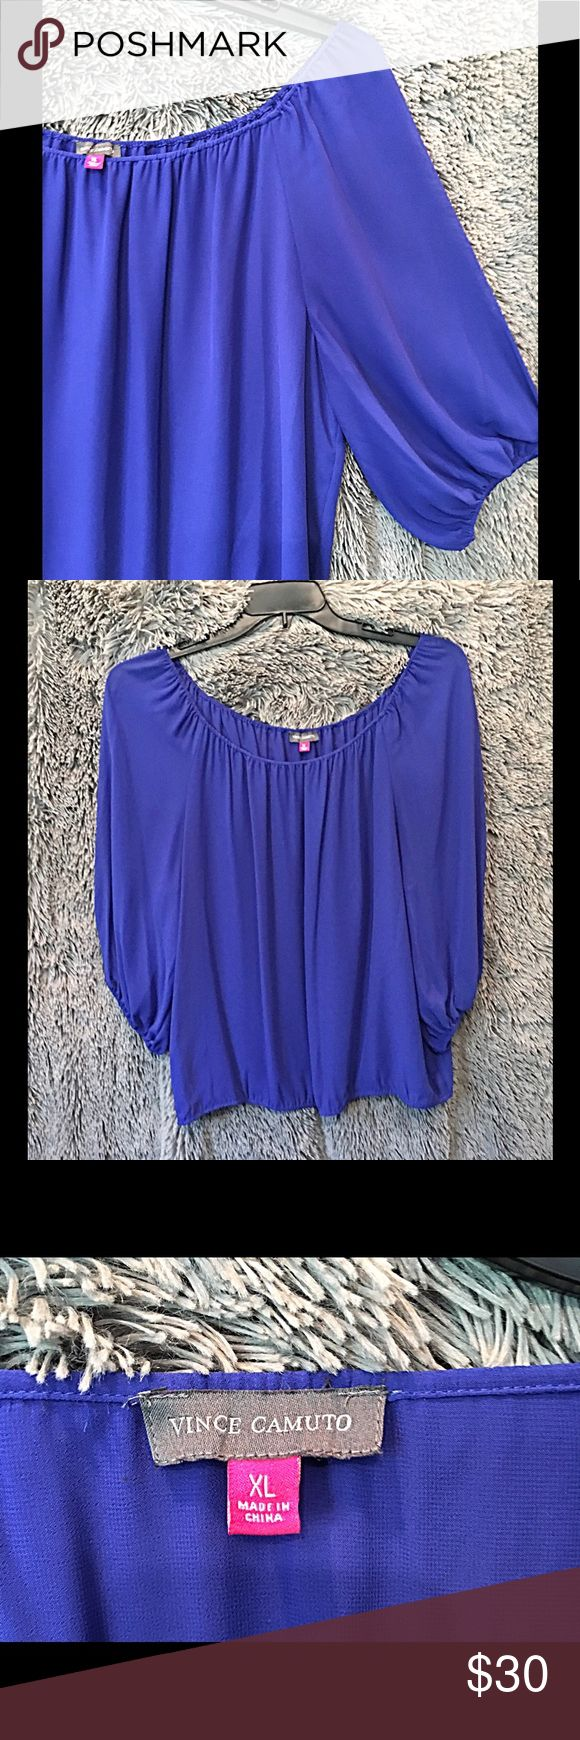 👋🏻 Vince Camuto Royal Blue Blouse This Vince Camuto royal blue blouse is 100% polyester.  While somewhat sheer, the top is lined with the same material, so there is no show-through.  There is elastic around the bottom of the 3/4 sleeves and also the bottom of the blouse - but it does not cause the blouse to bunch up, it hangs nicely.  Very gently used, in beautiful condition. Vince Camuto Tops Blouses